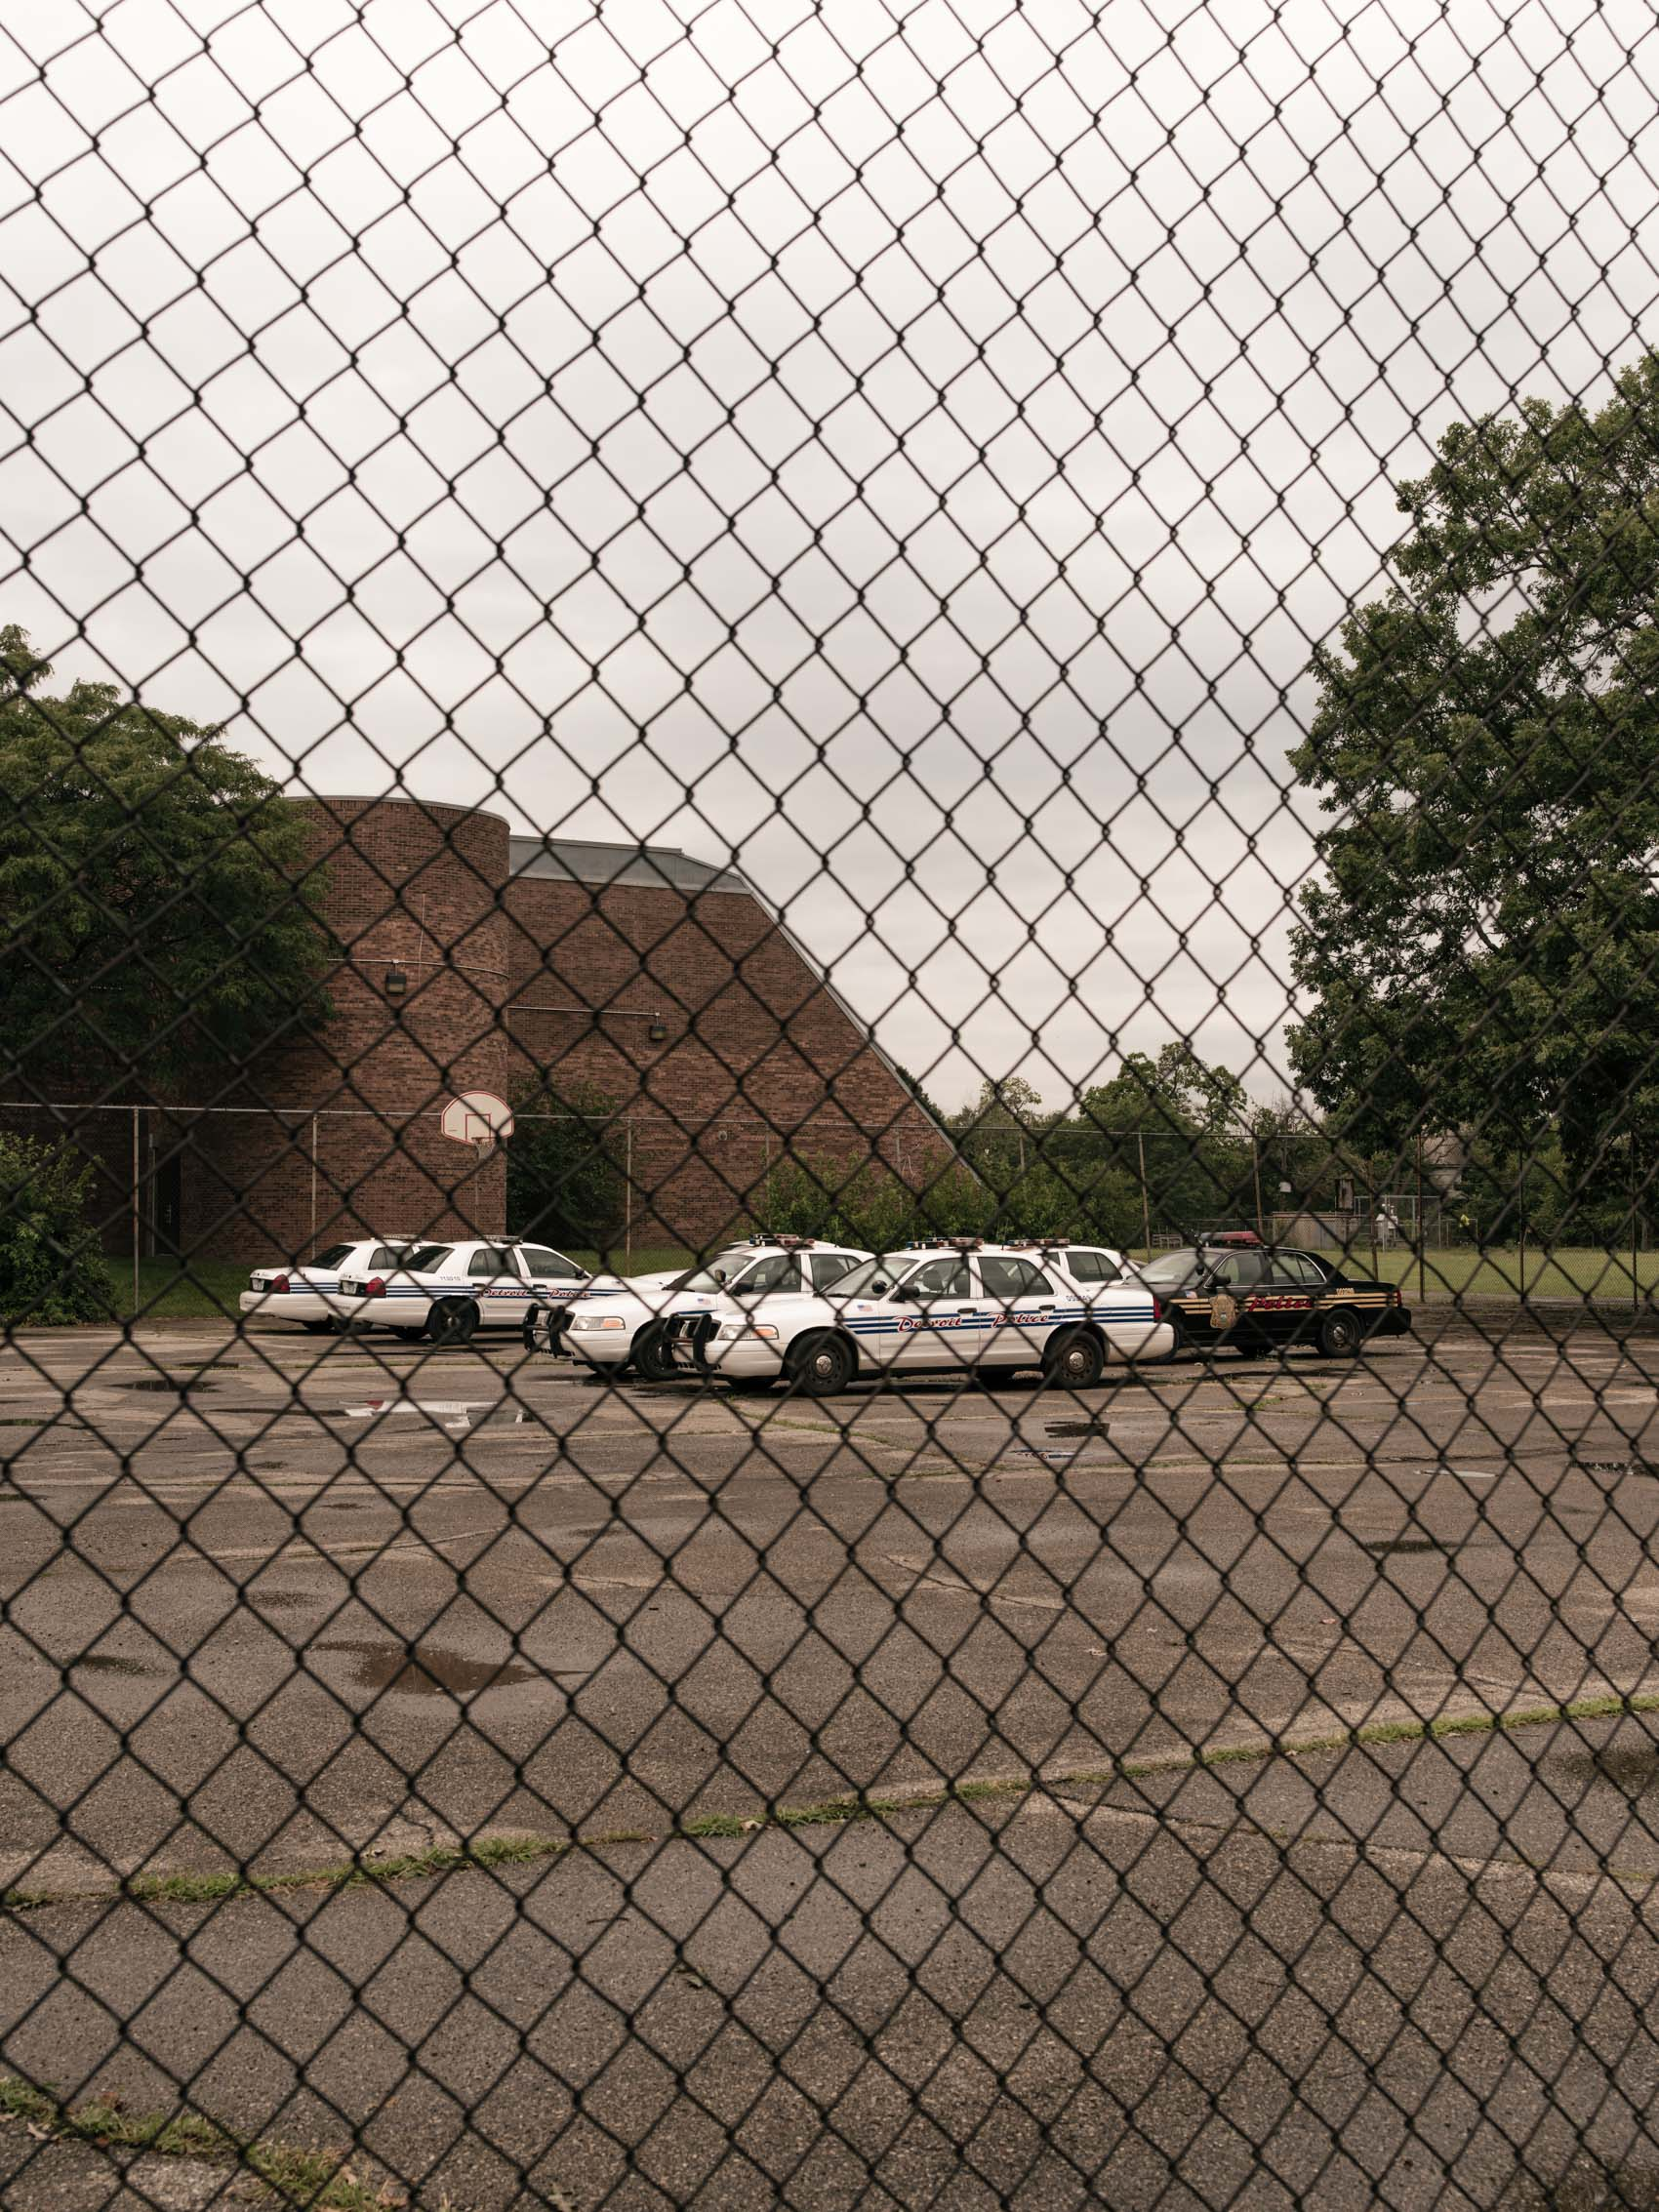 police cars behind chainlink fence